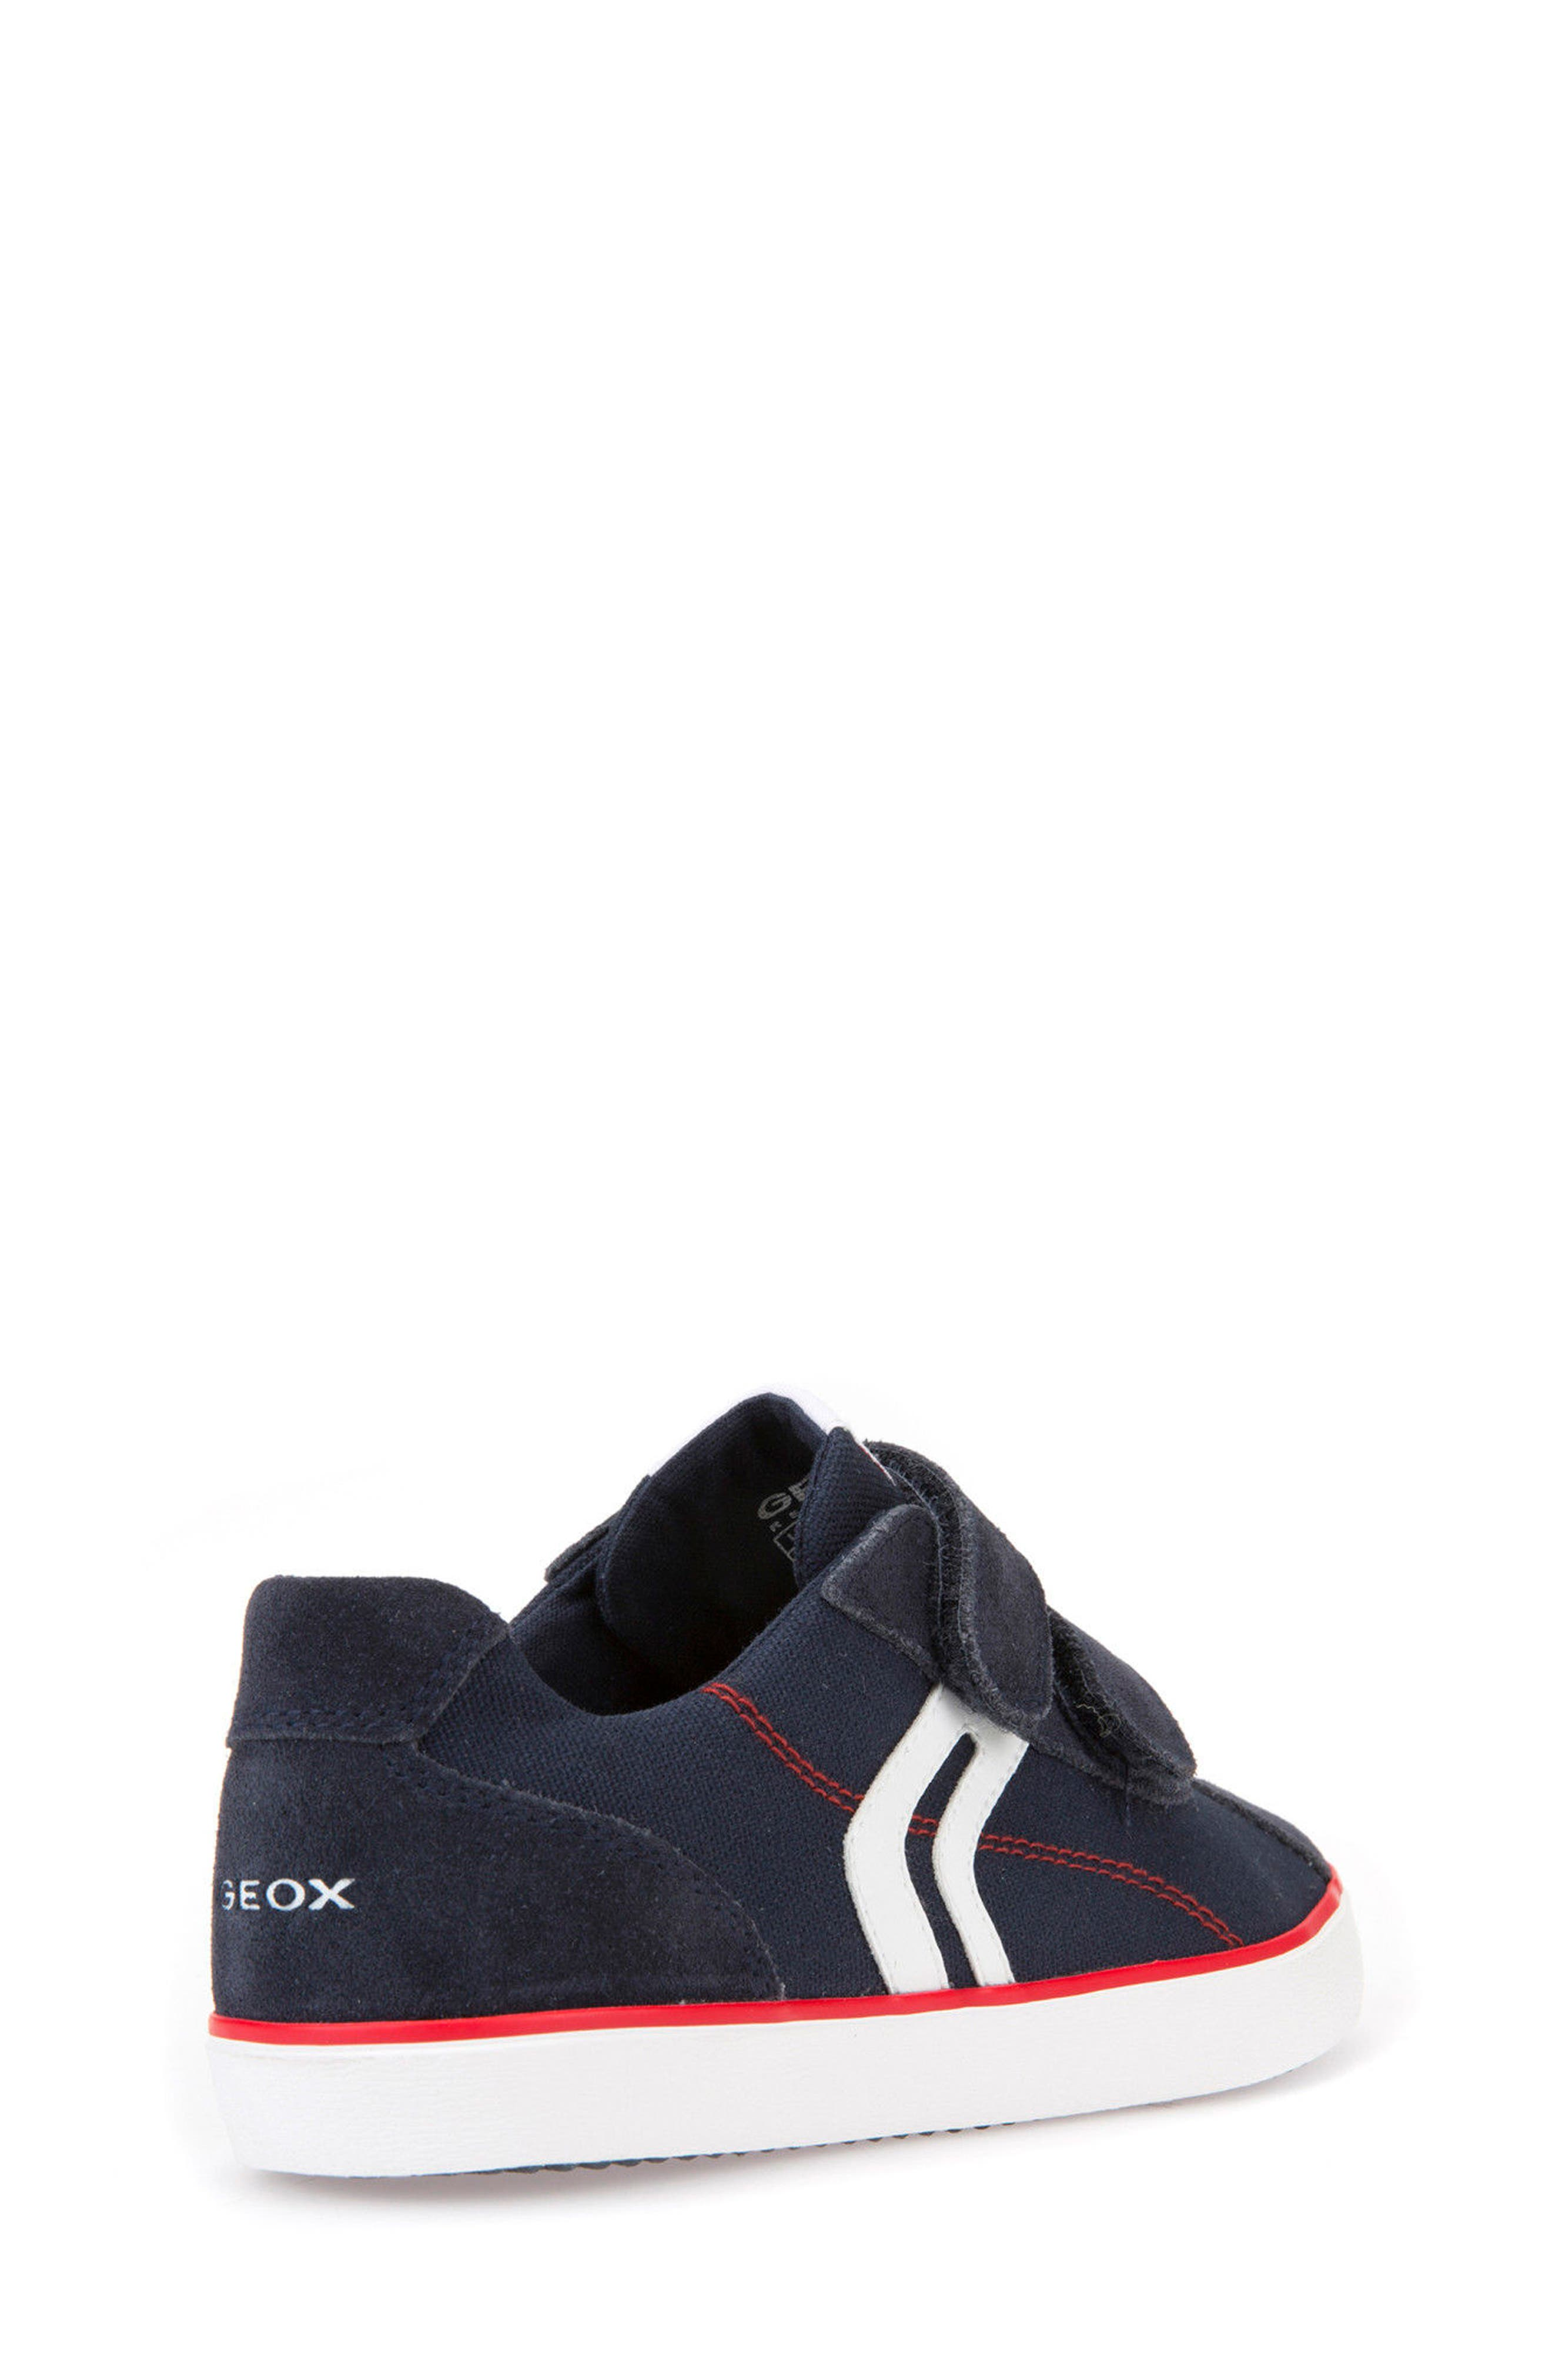 Kilwi Low Top Sneaker,                             Alternate thumbnail 2, color,                             NAVY/ RED